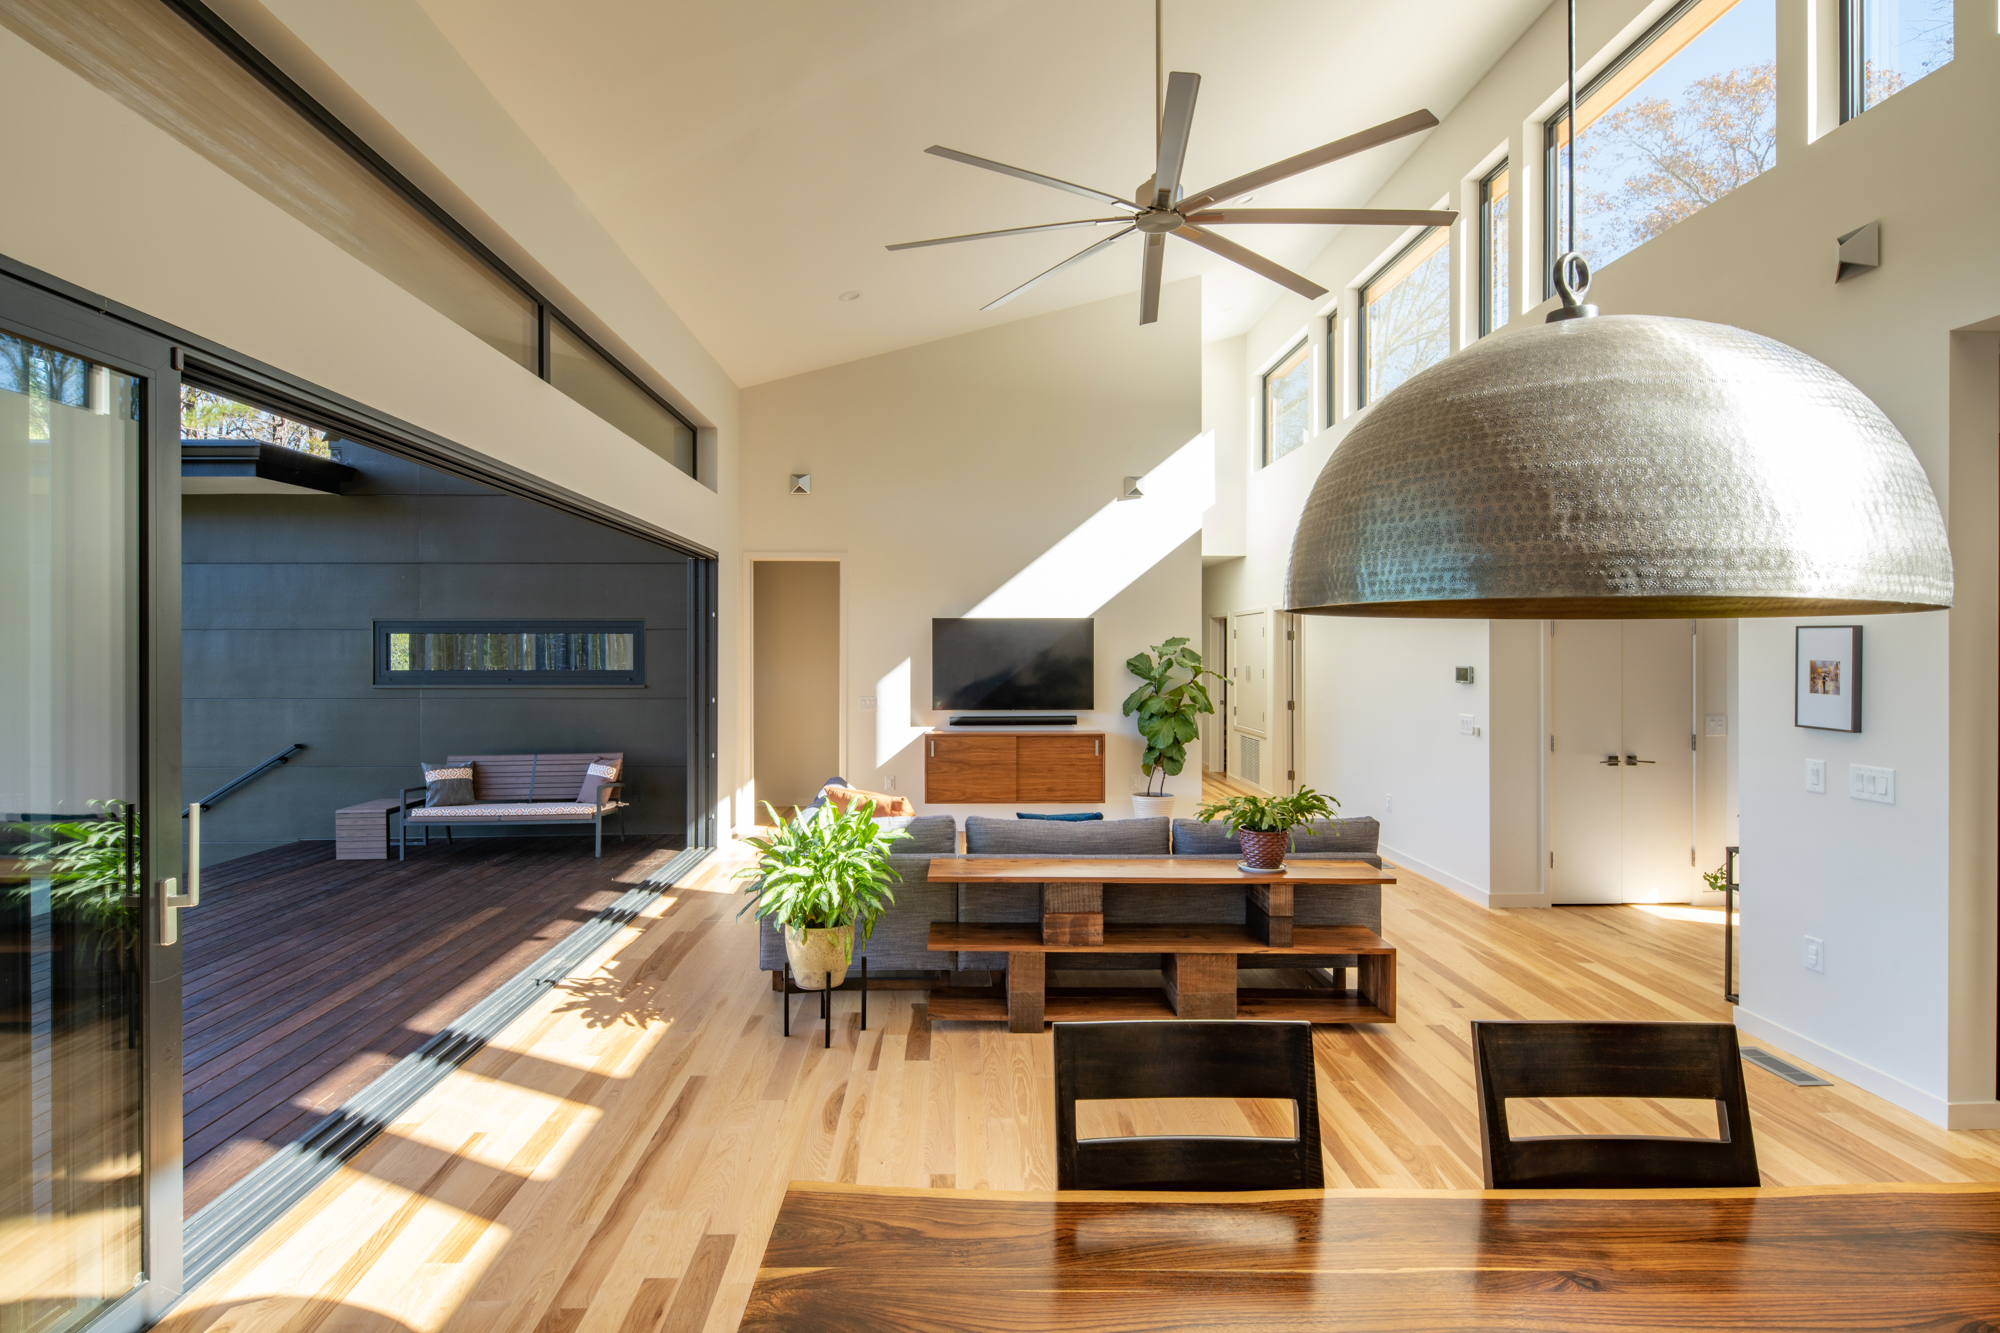 Connecting the indoors to the terrace